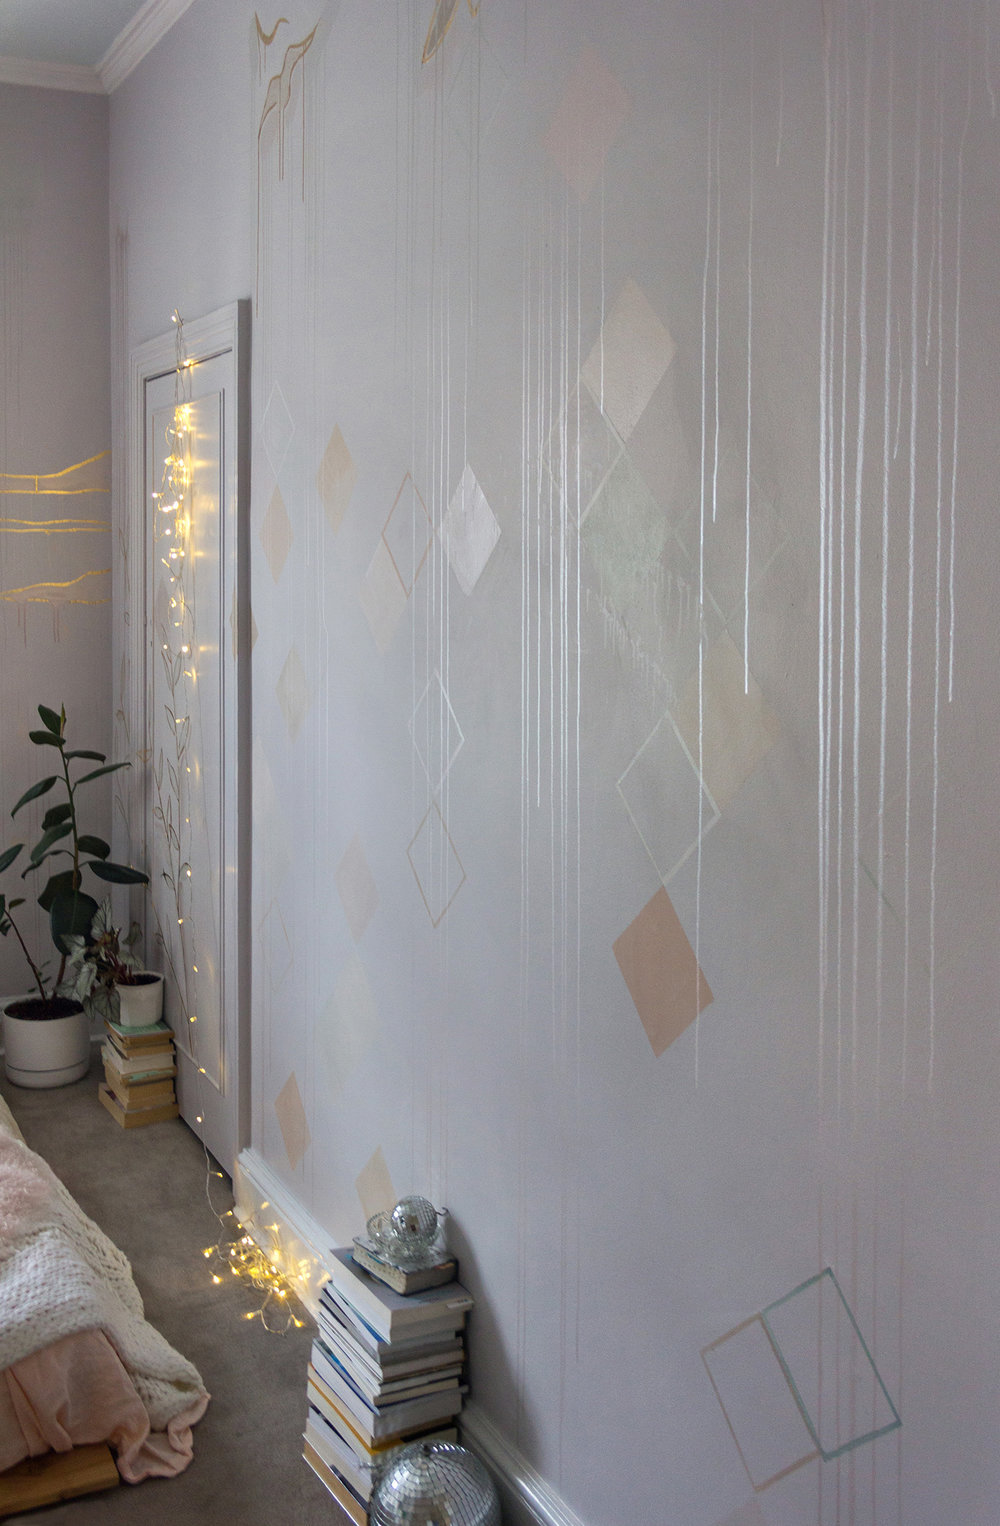 Cosy bedroom featuring a mural in pastel and metallic colours with gold leaf birds flying. Fairy lights provide a glow.